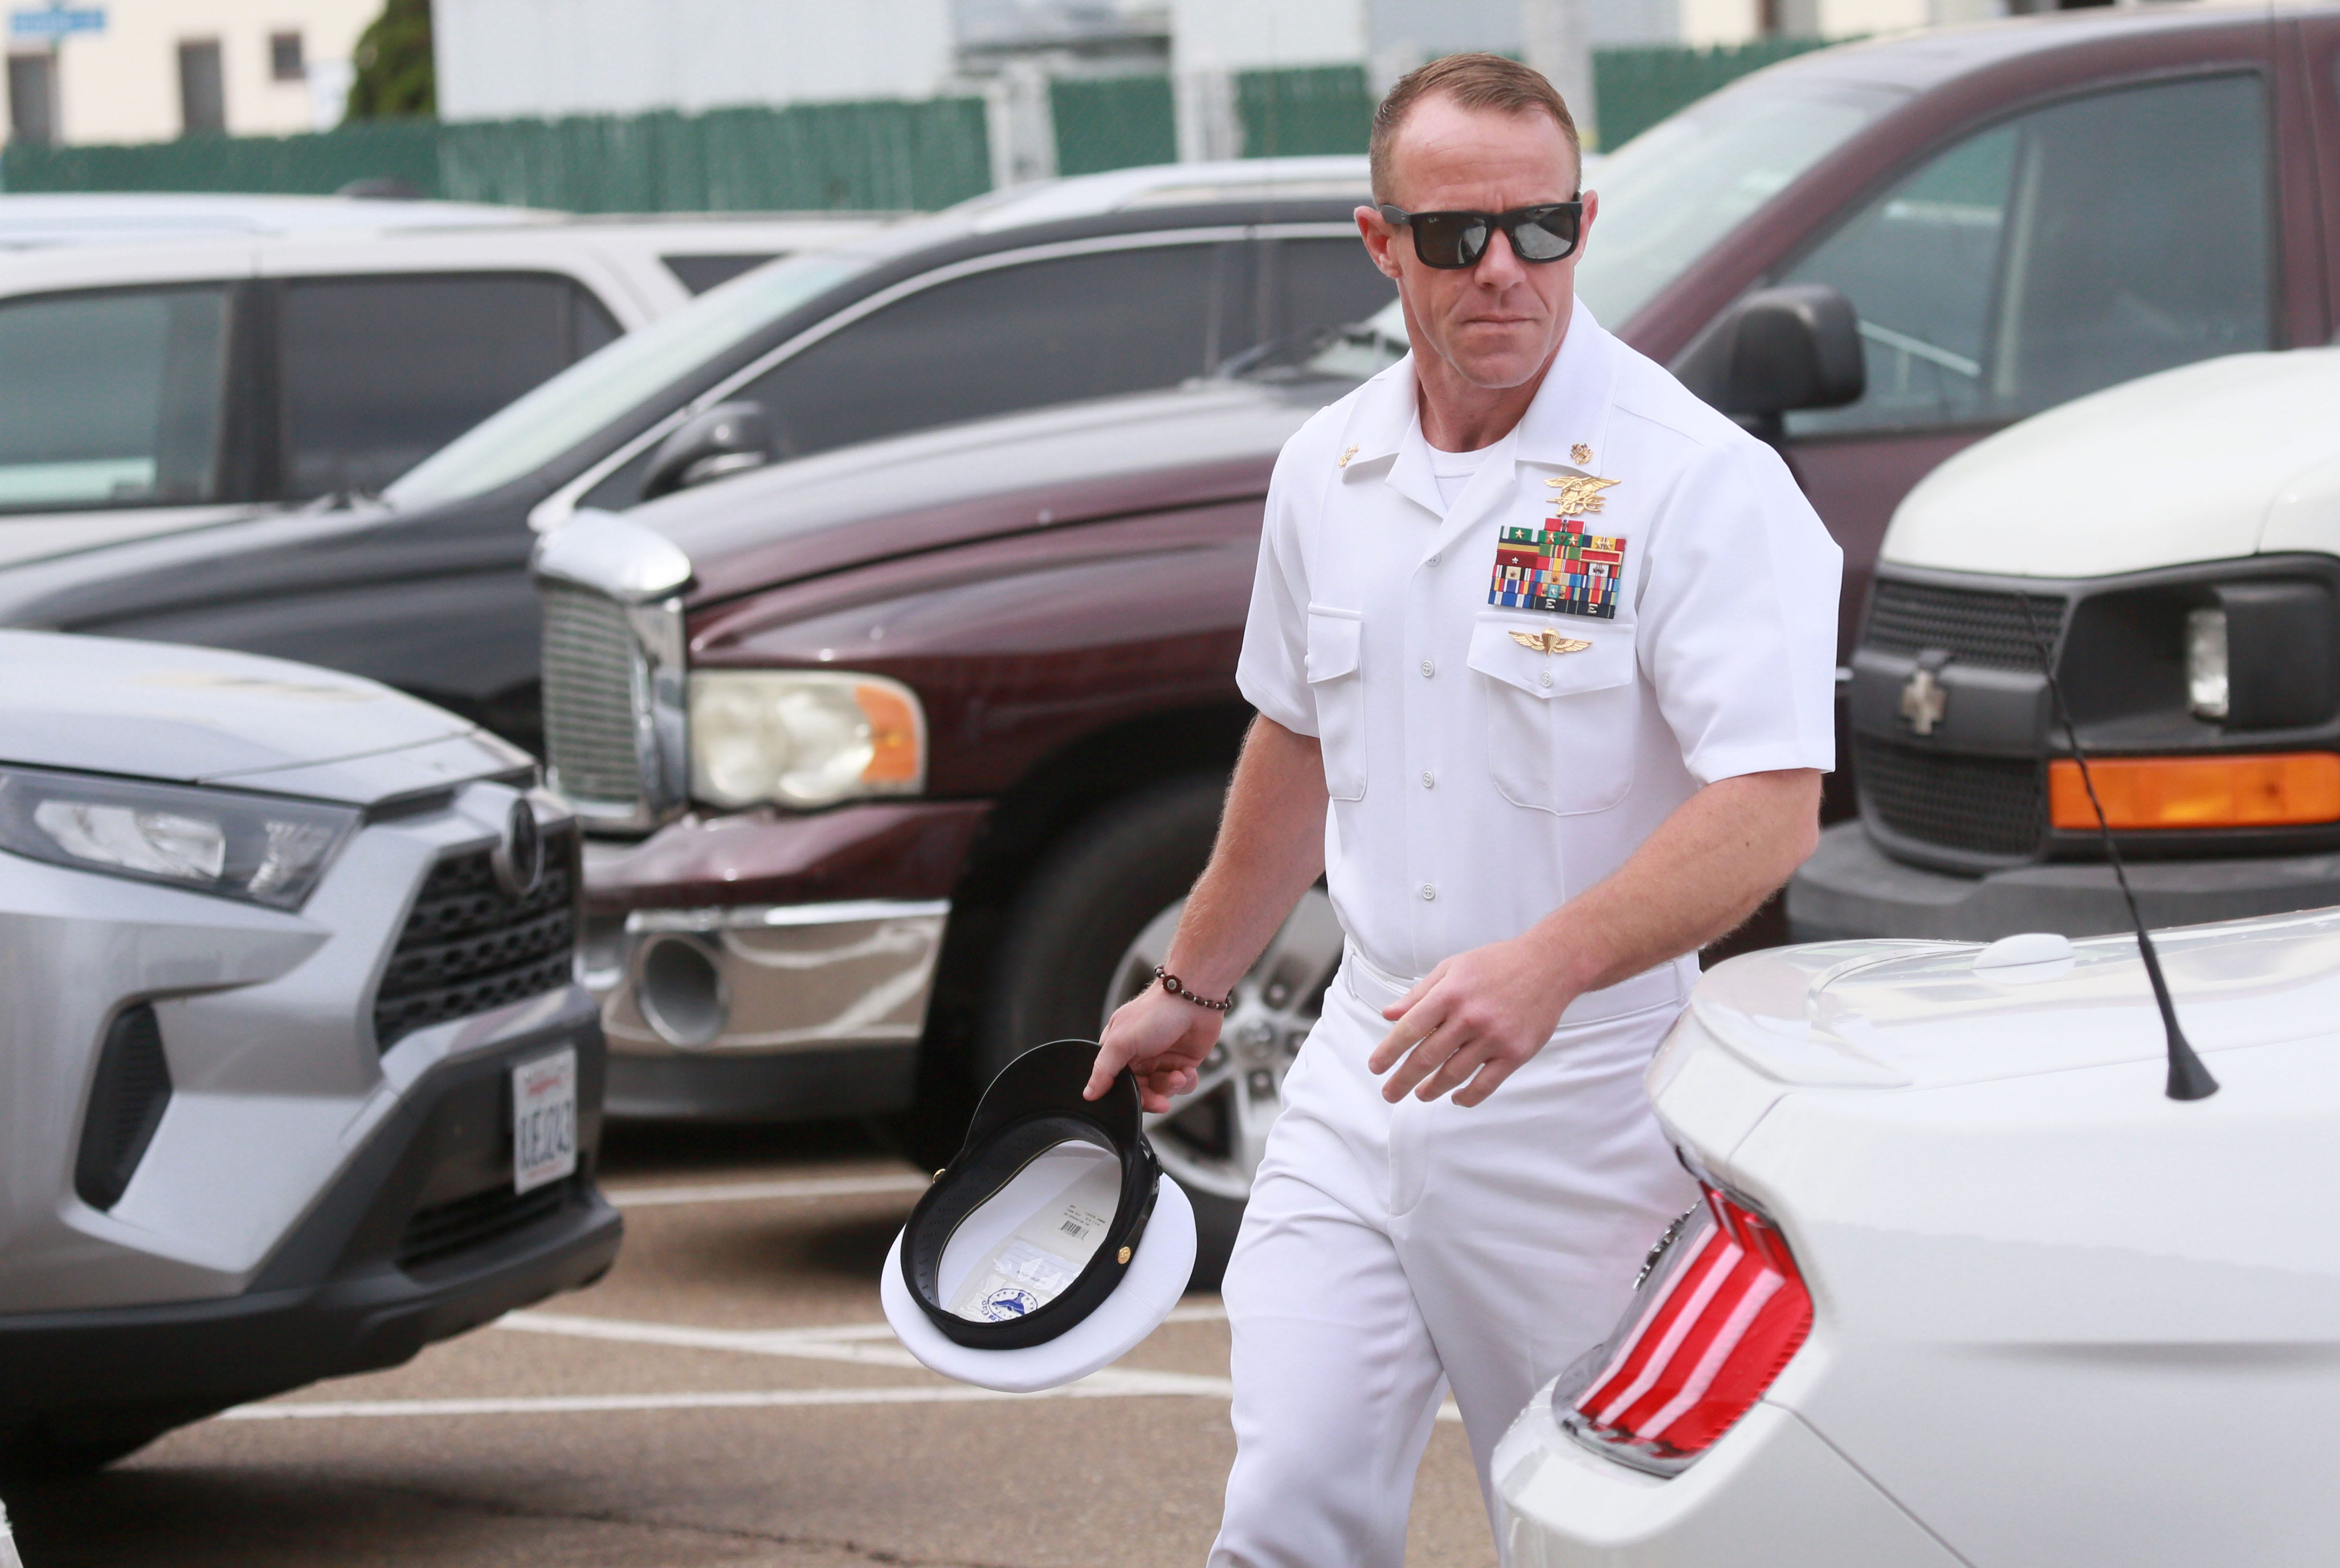 Navy says review board will not look at case of SEAL Eddie Gallagher, who will retire